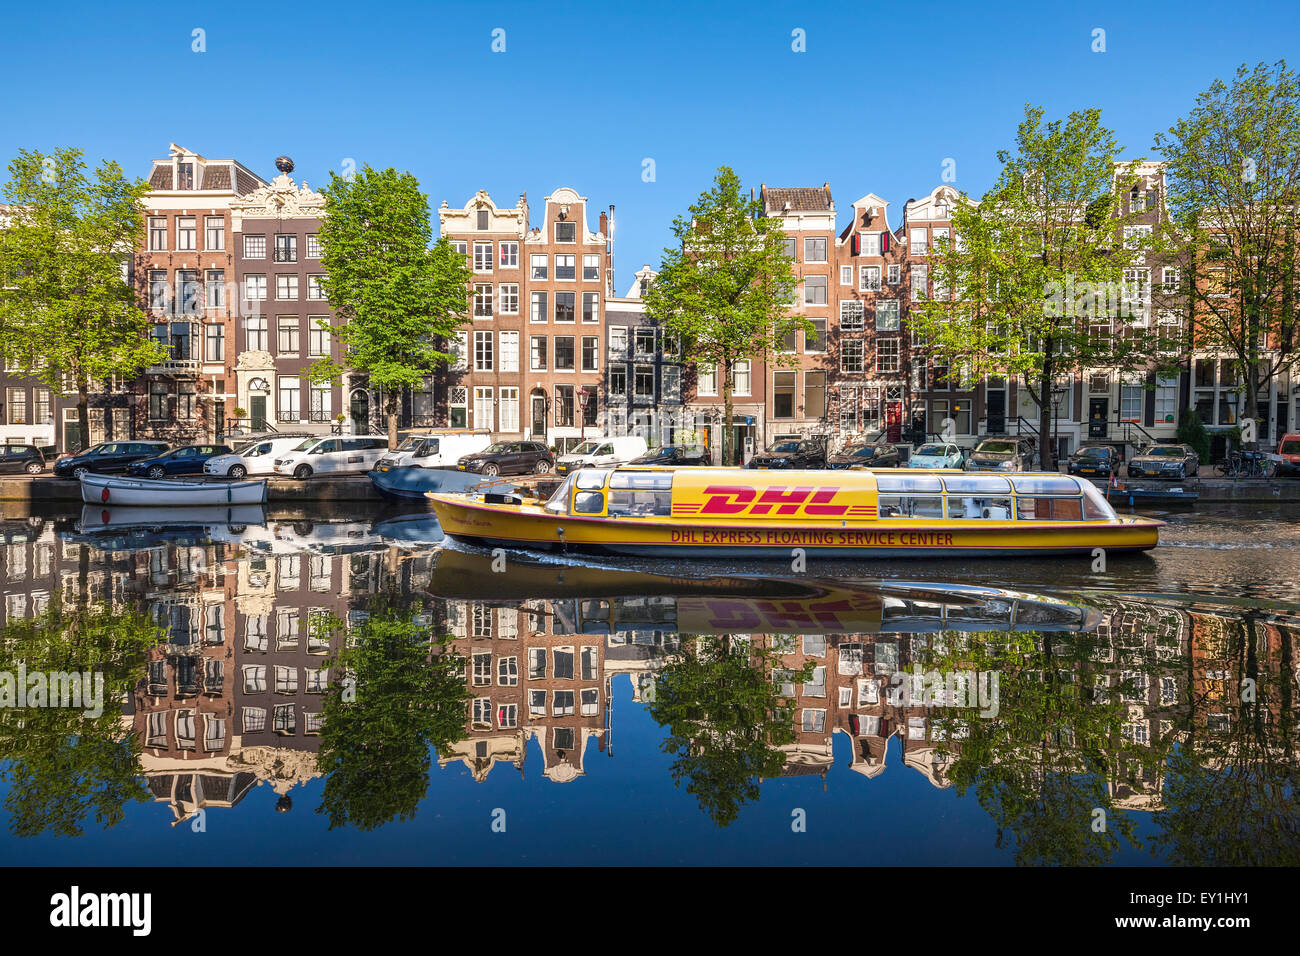 https://c7.alamy.com/comp/EY1HY1/amsterdam-singel-canal-with-dhl-delivery-canal-boat-in-early-morning-EY1HY1.jpg